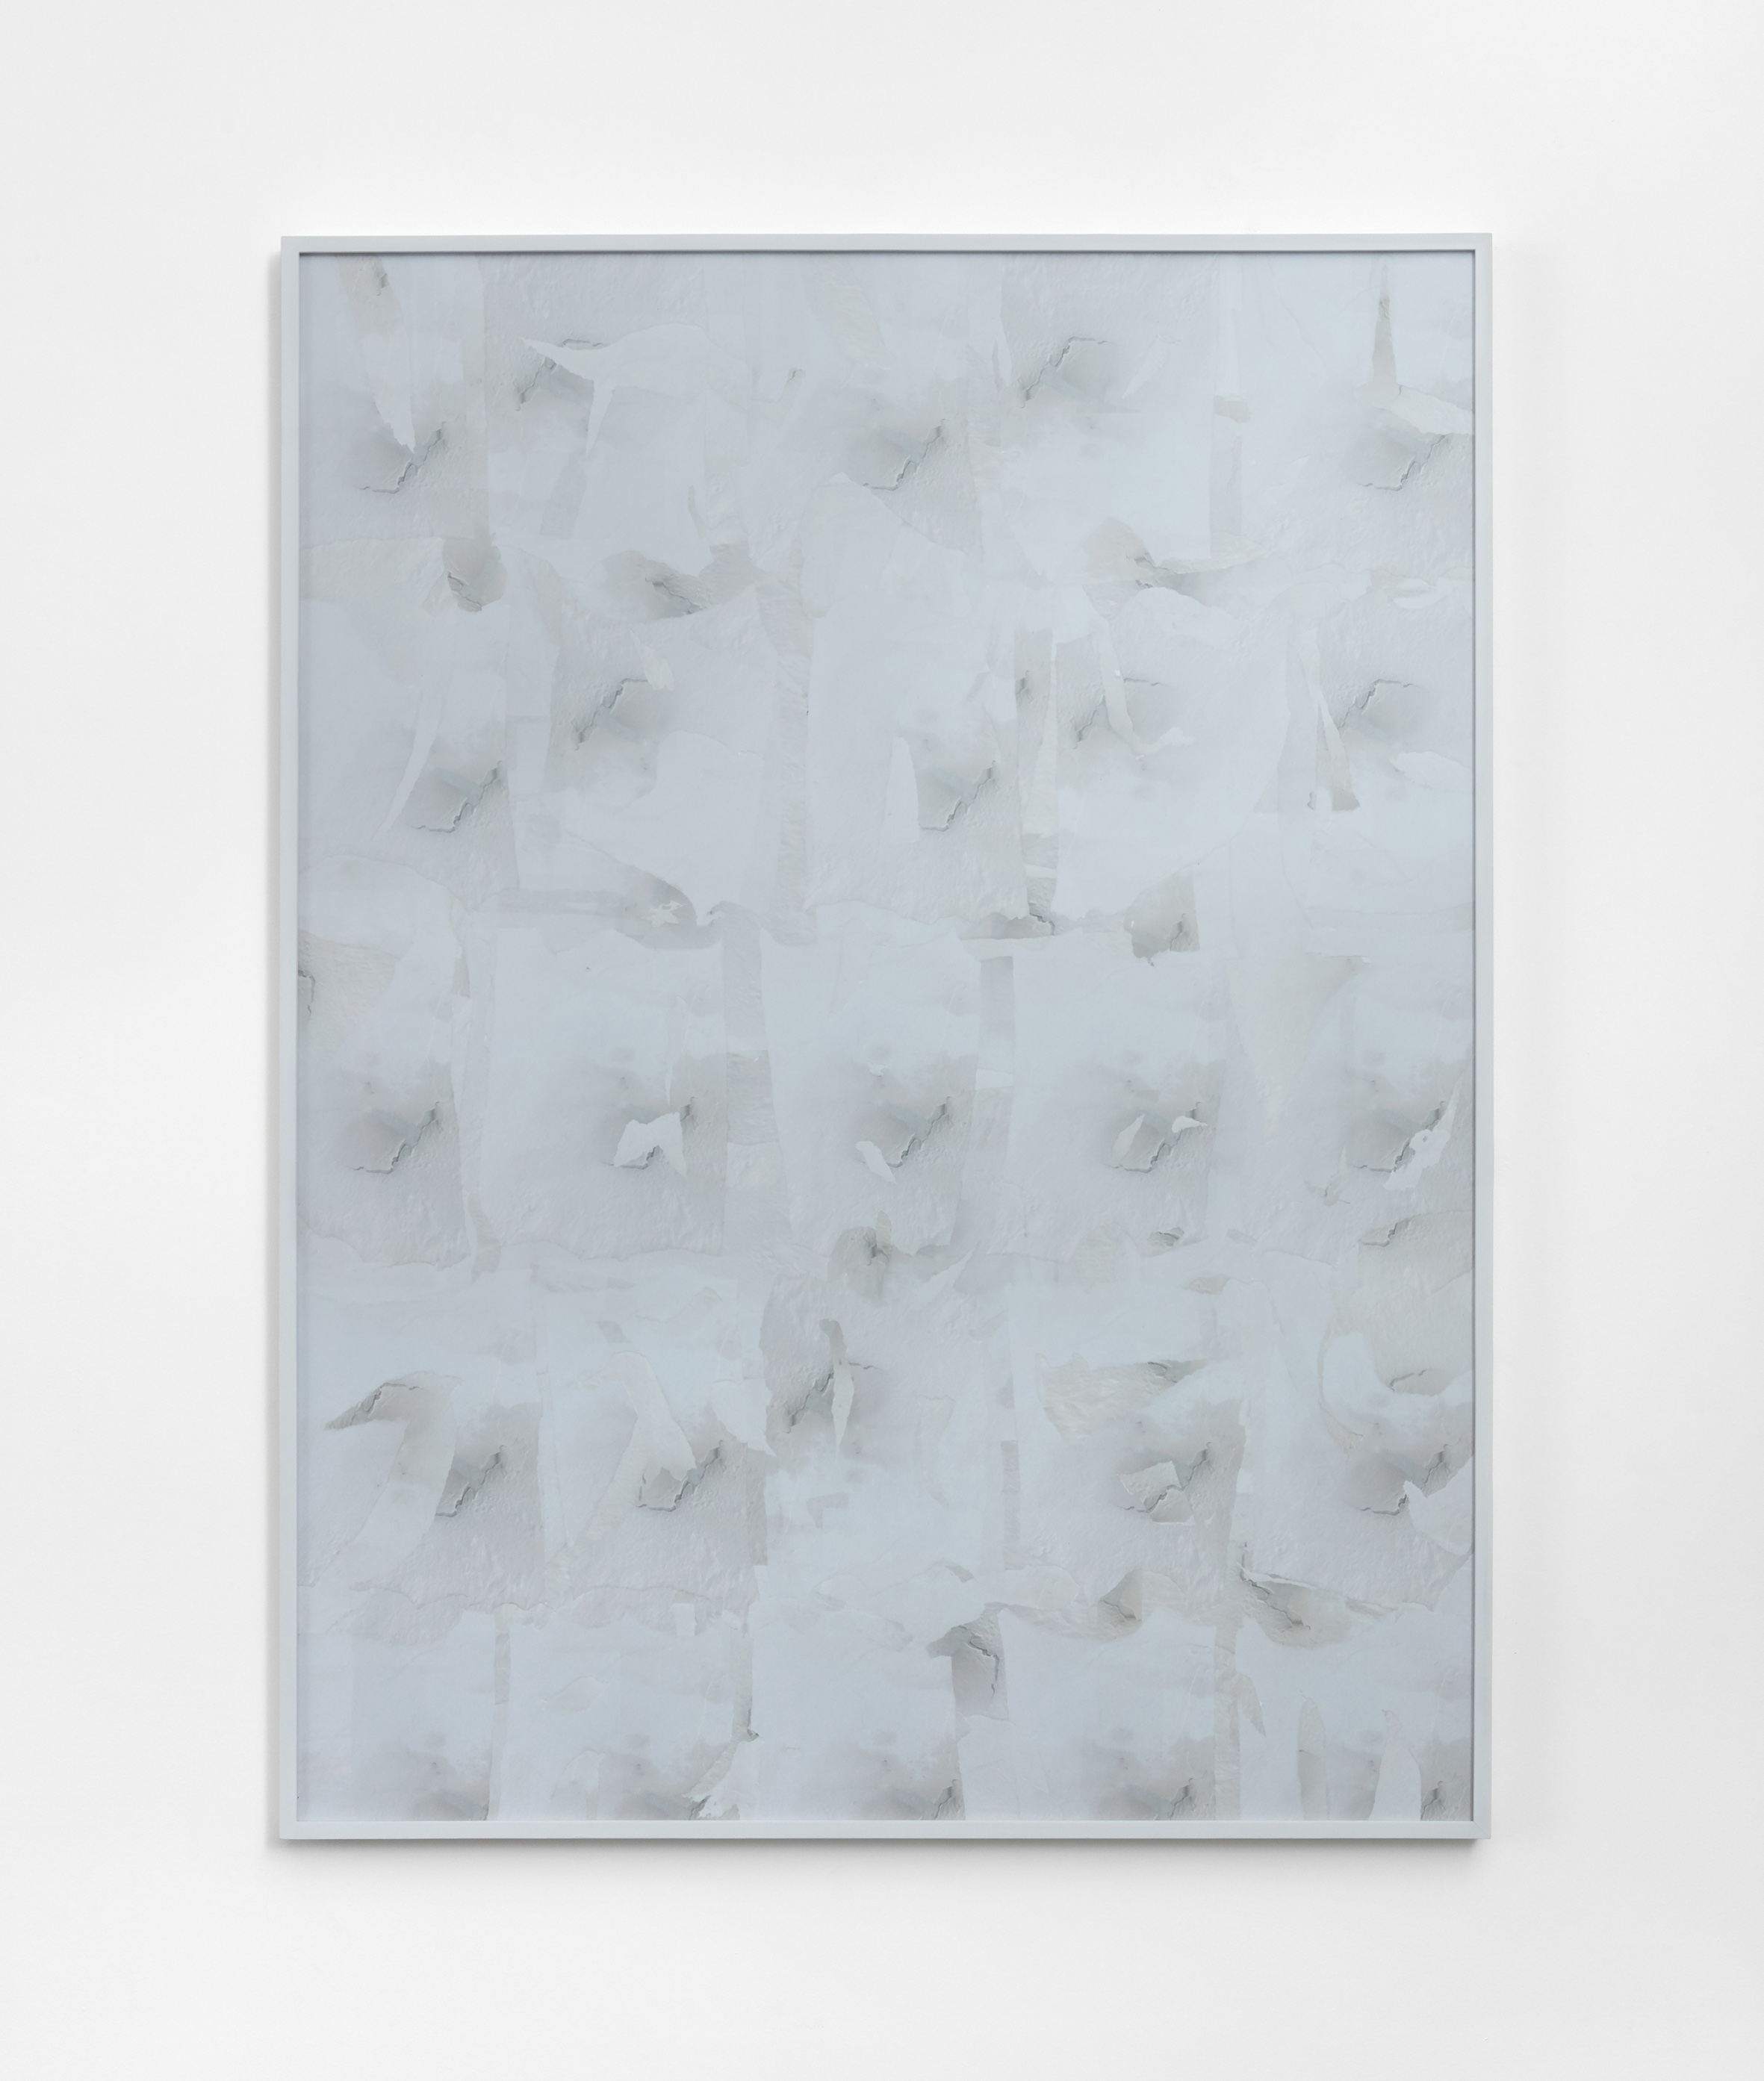 Patrick Foster  Ceiling collage 2, 2017  Inkjet collage, glass, artist's frame, 120 x 90 cm